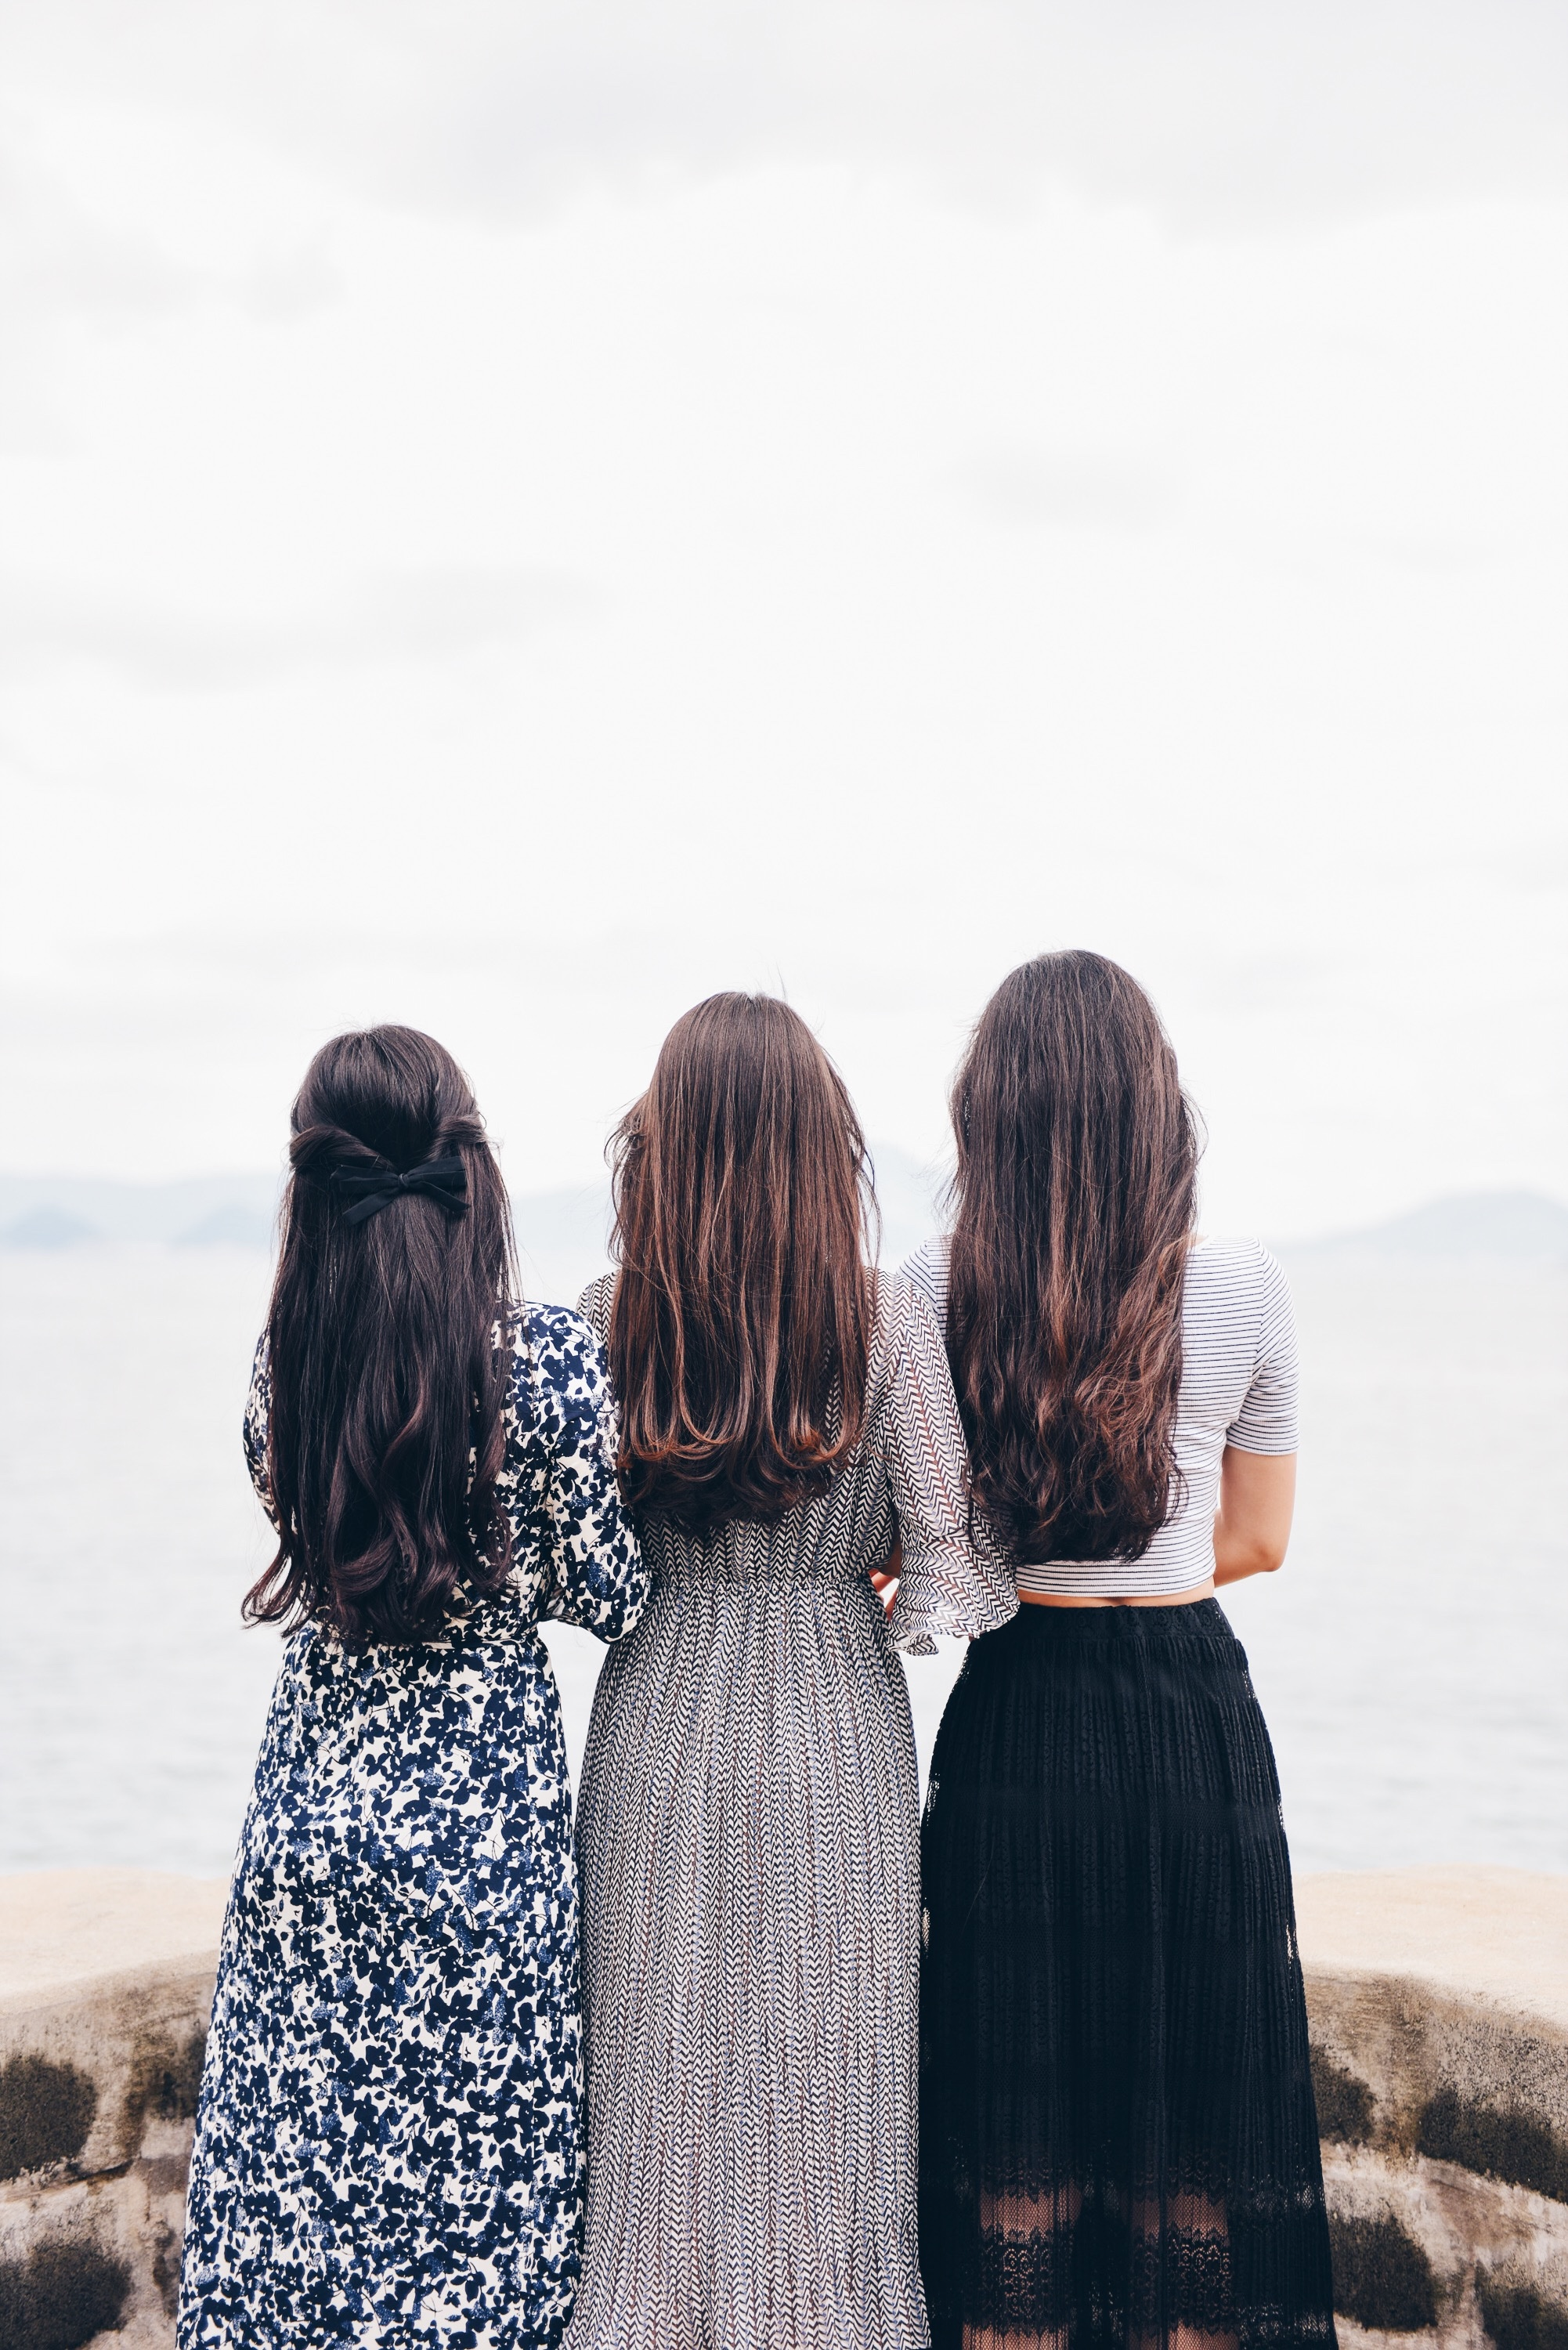 Daughters in Christ // By Rachel Anderson